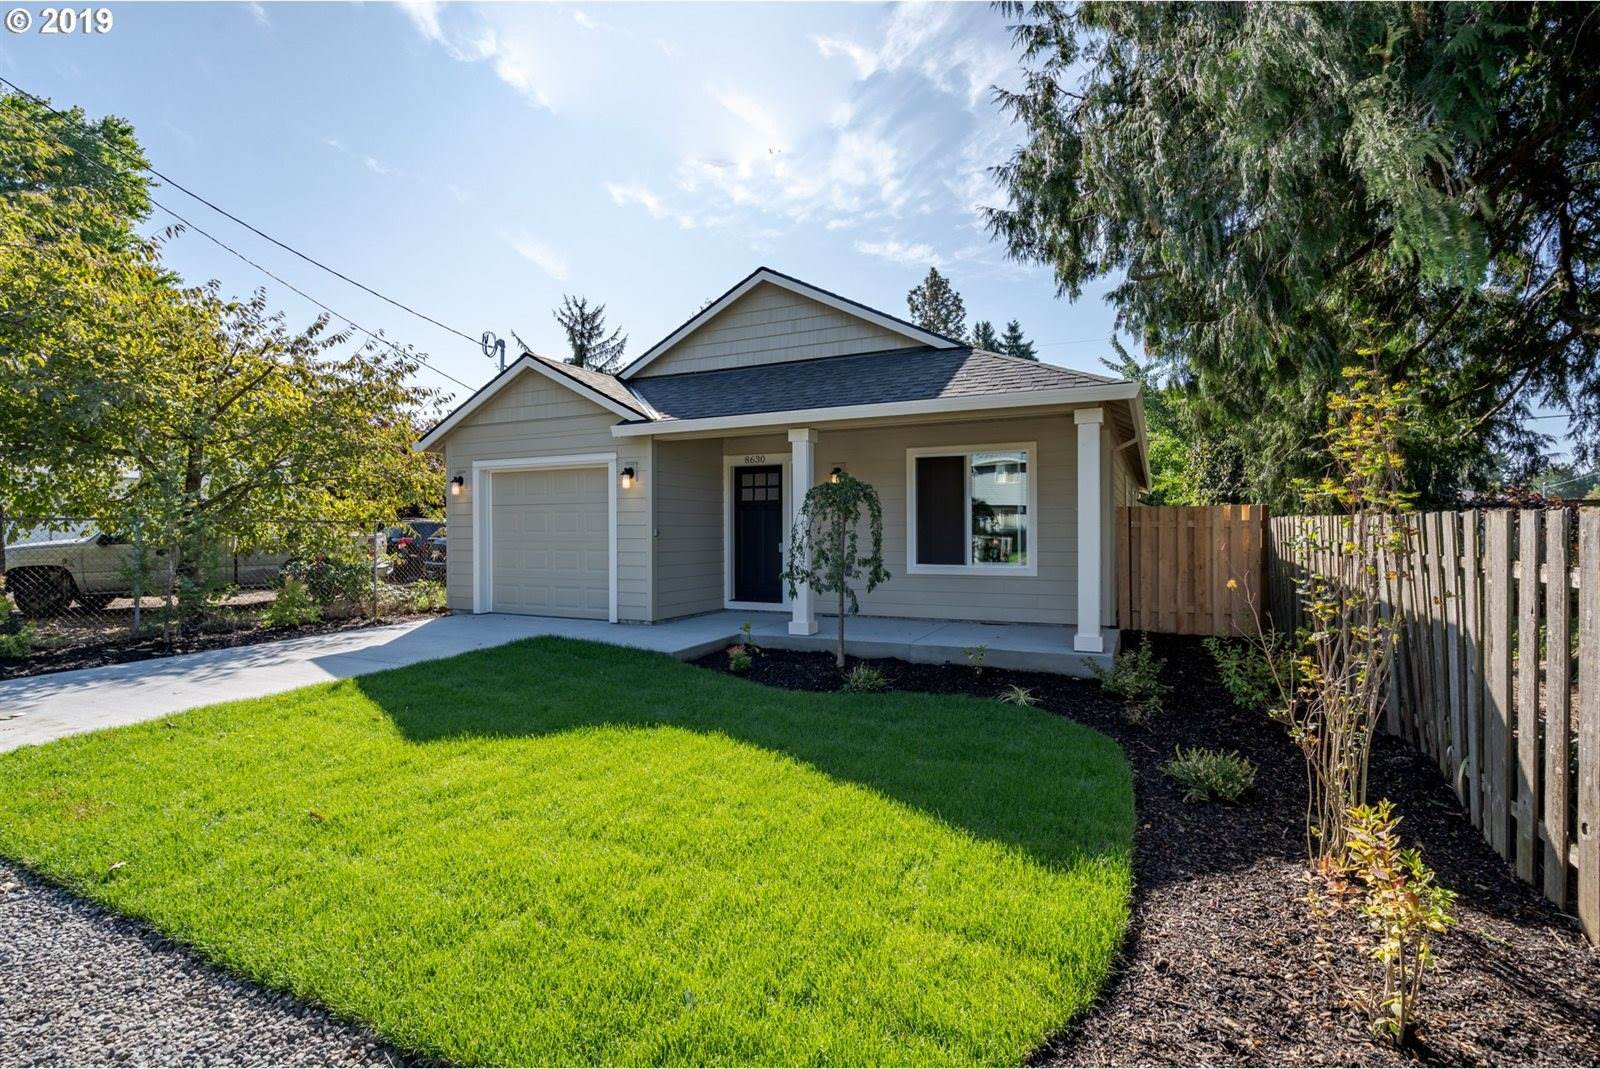 8630 SE Gray St, Happy Valley, OR 97086